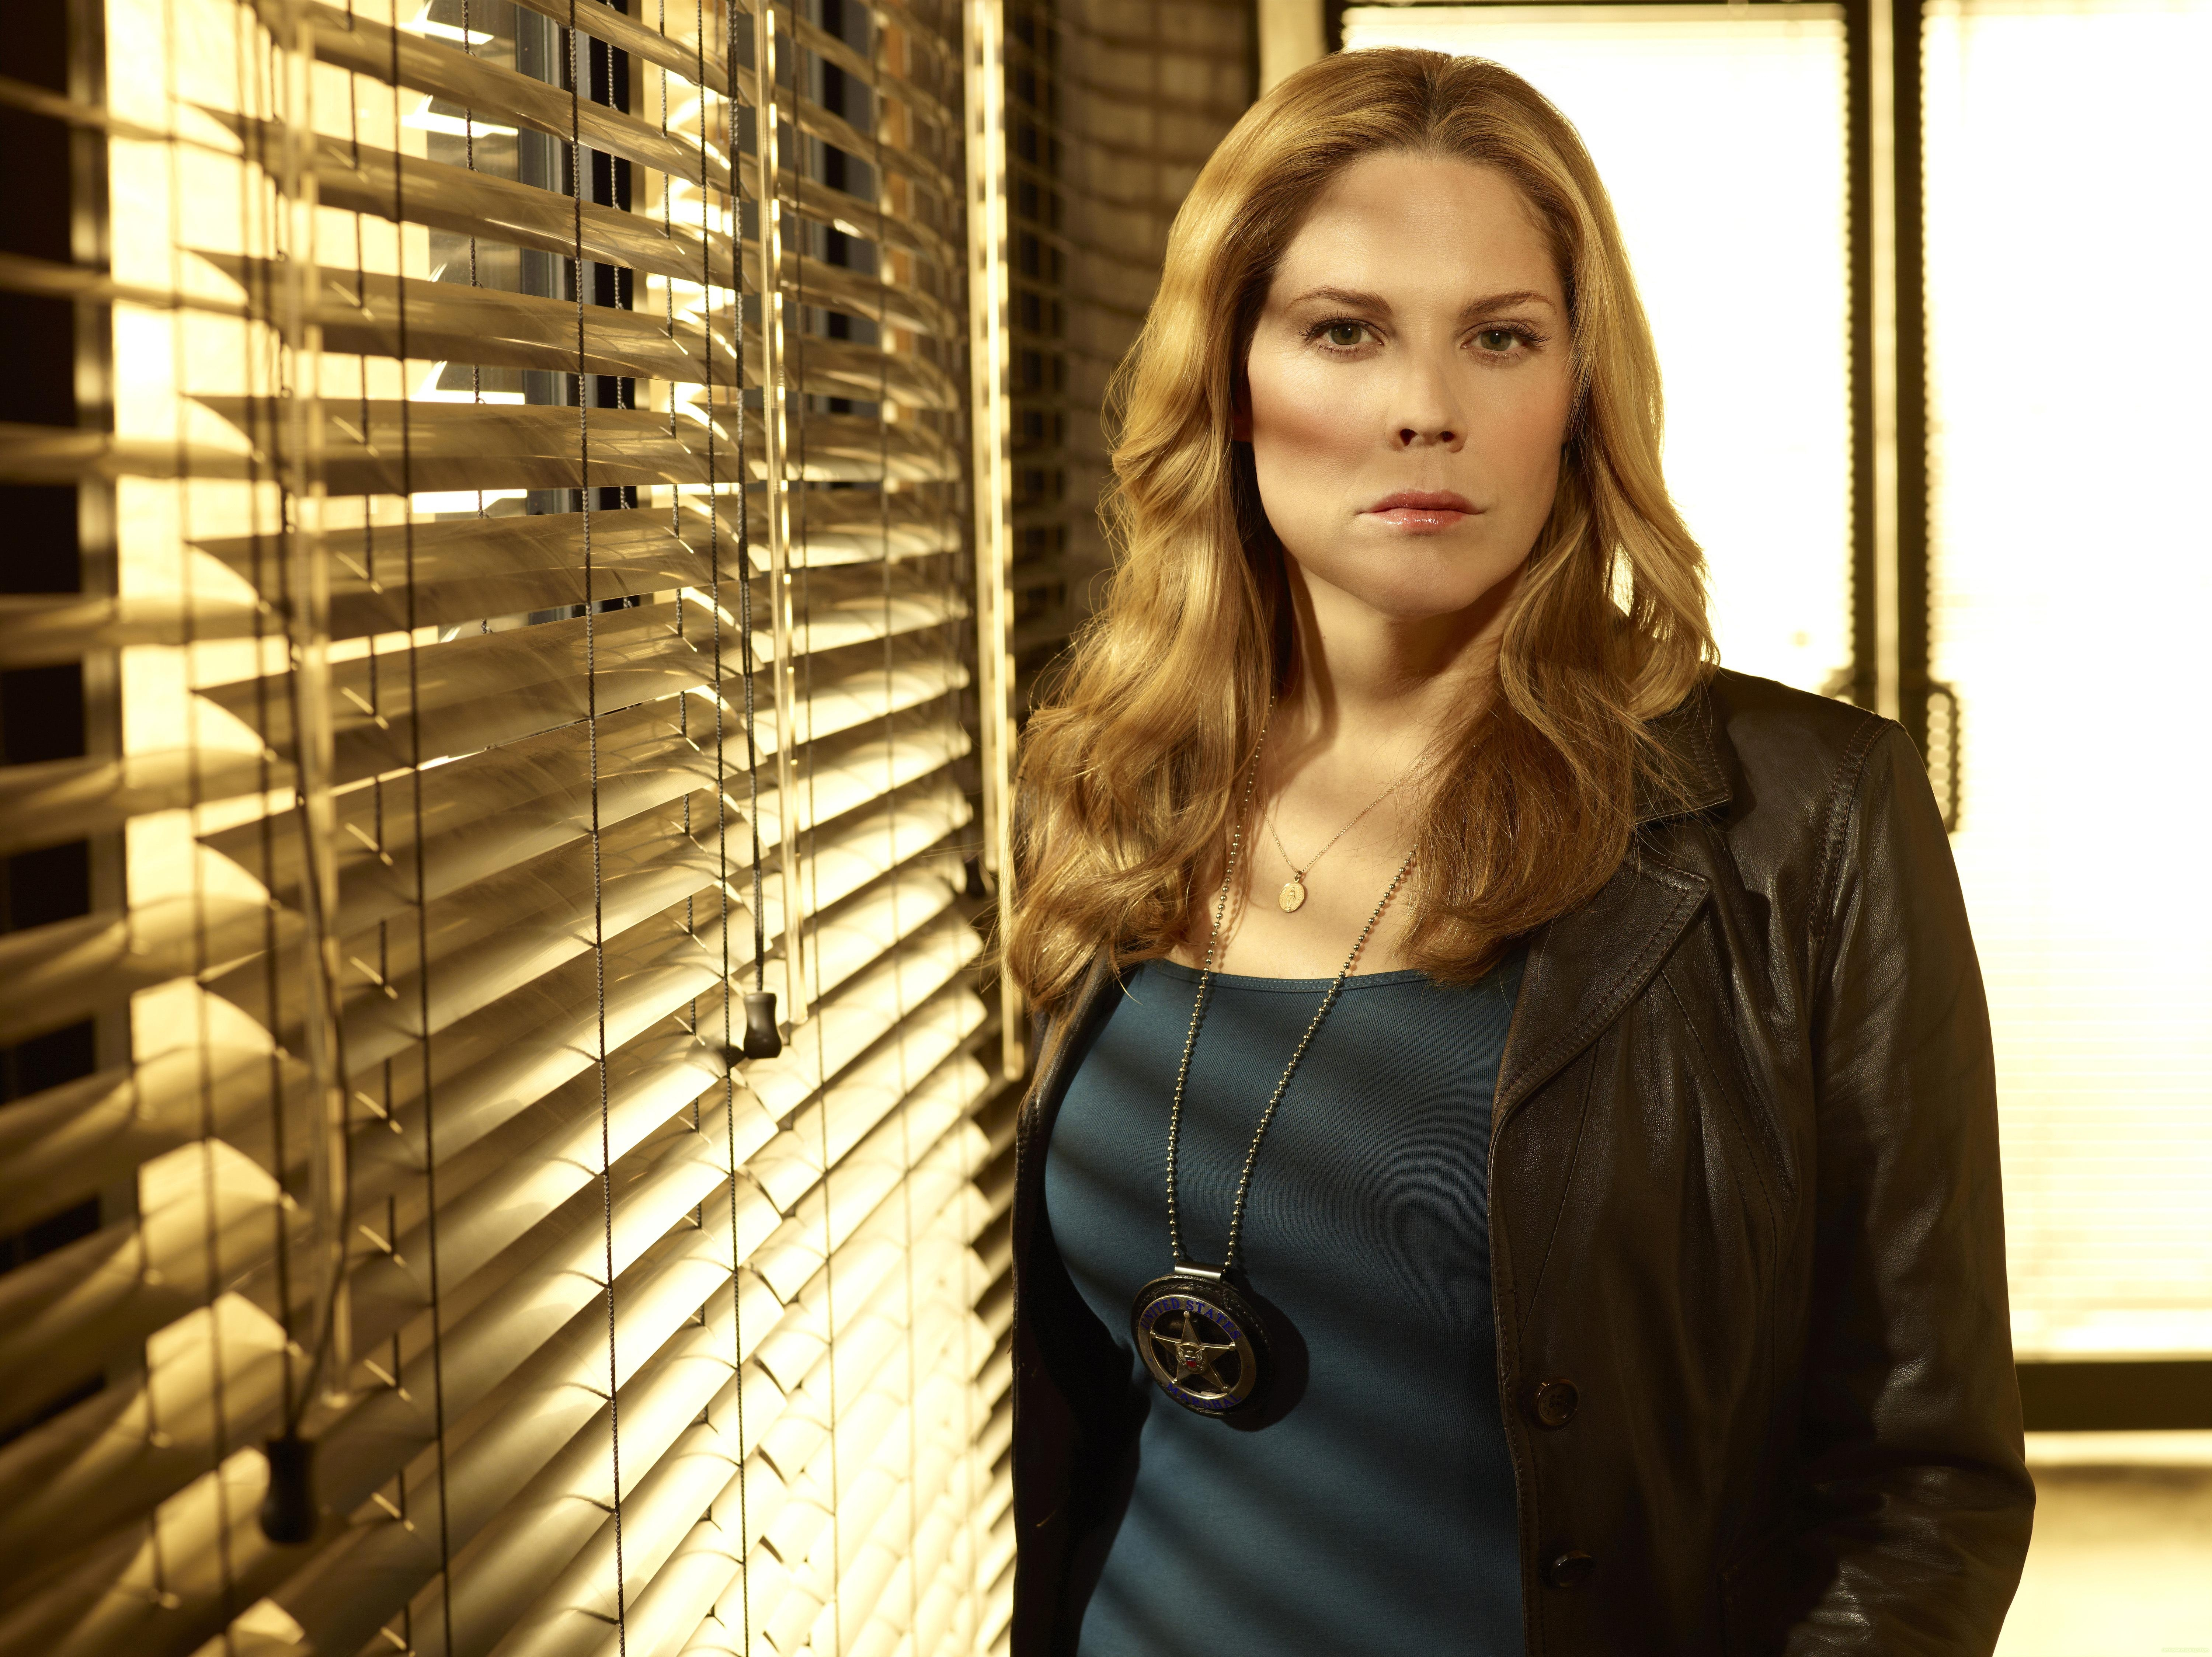 Leon De La Mothe Wallpapers MARY MCCORMACK WALLPAPERS FREE Wallpapers Background images